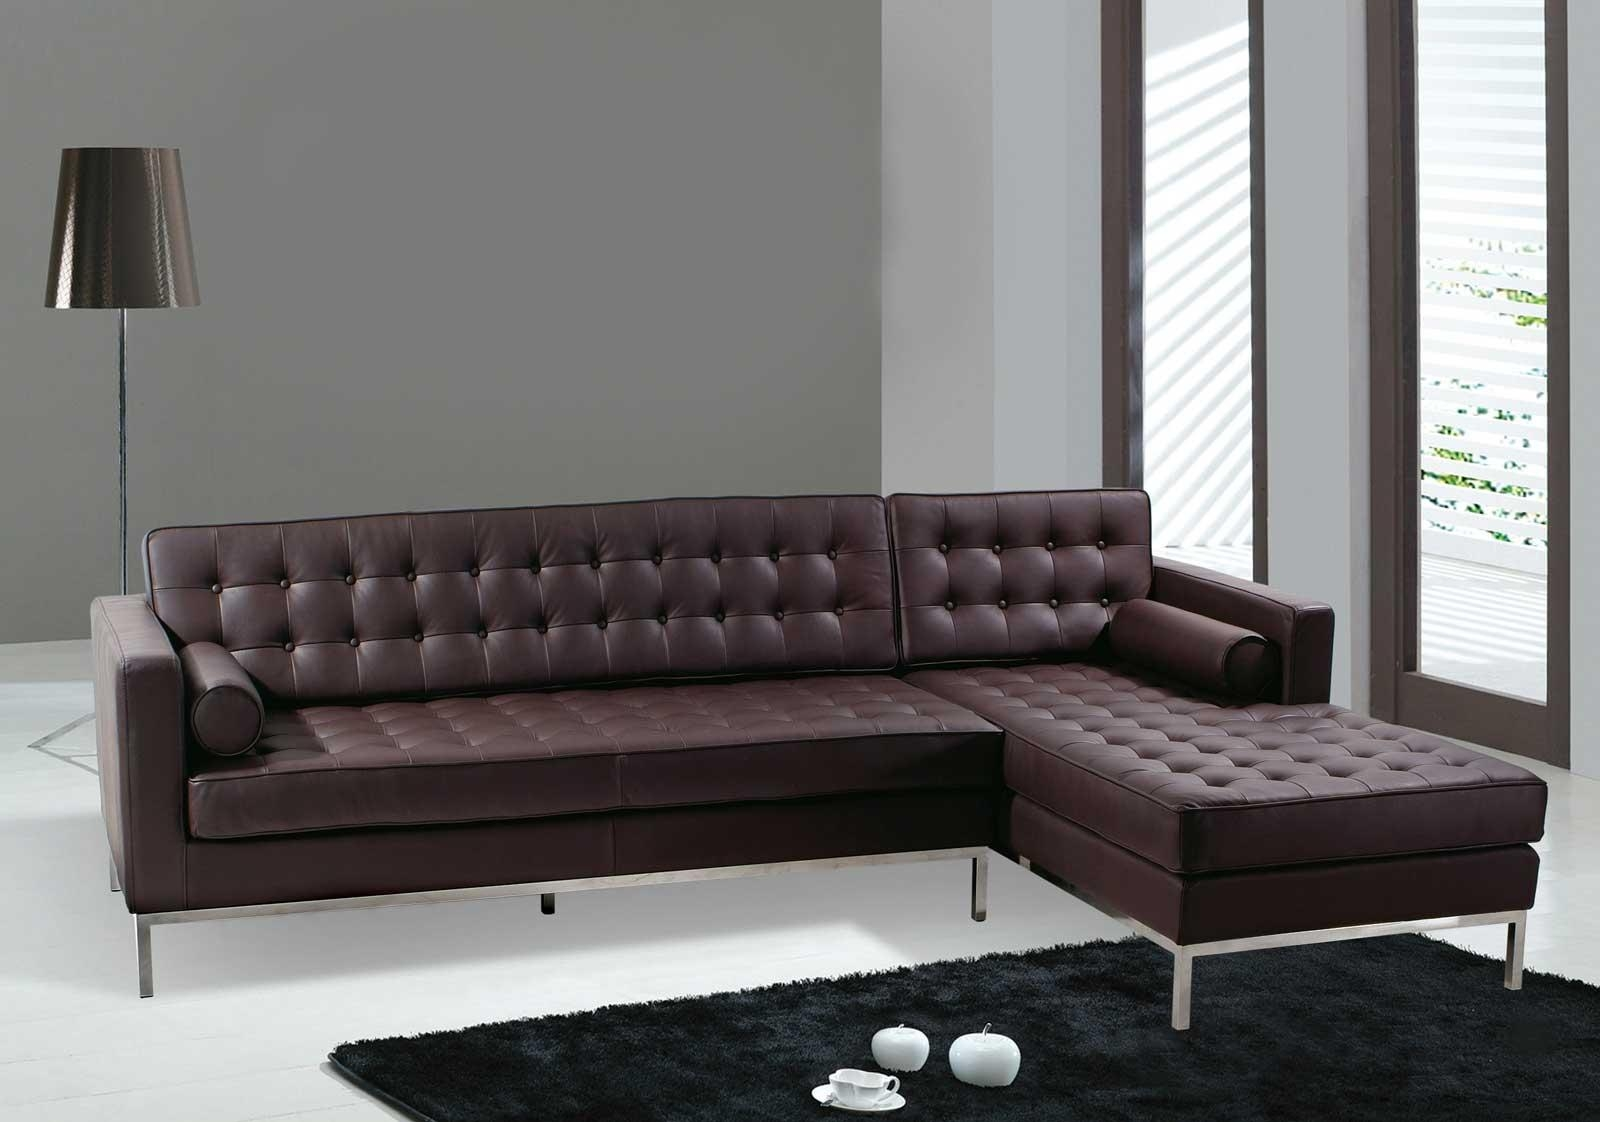 Contemporary Modern Sectional Sofas — Liberty Interior With Regard To Modern Sectional Sofas For Small Spaces (Image 4 of 20)